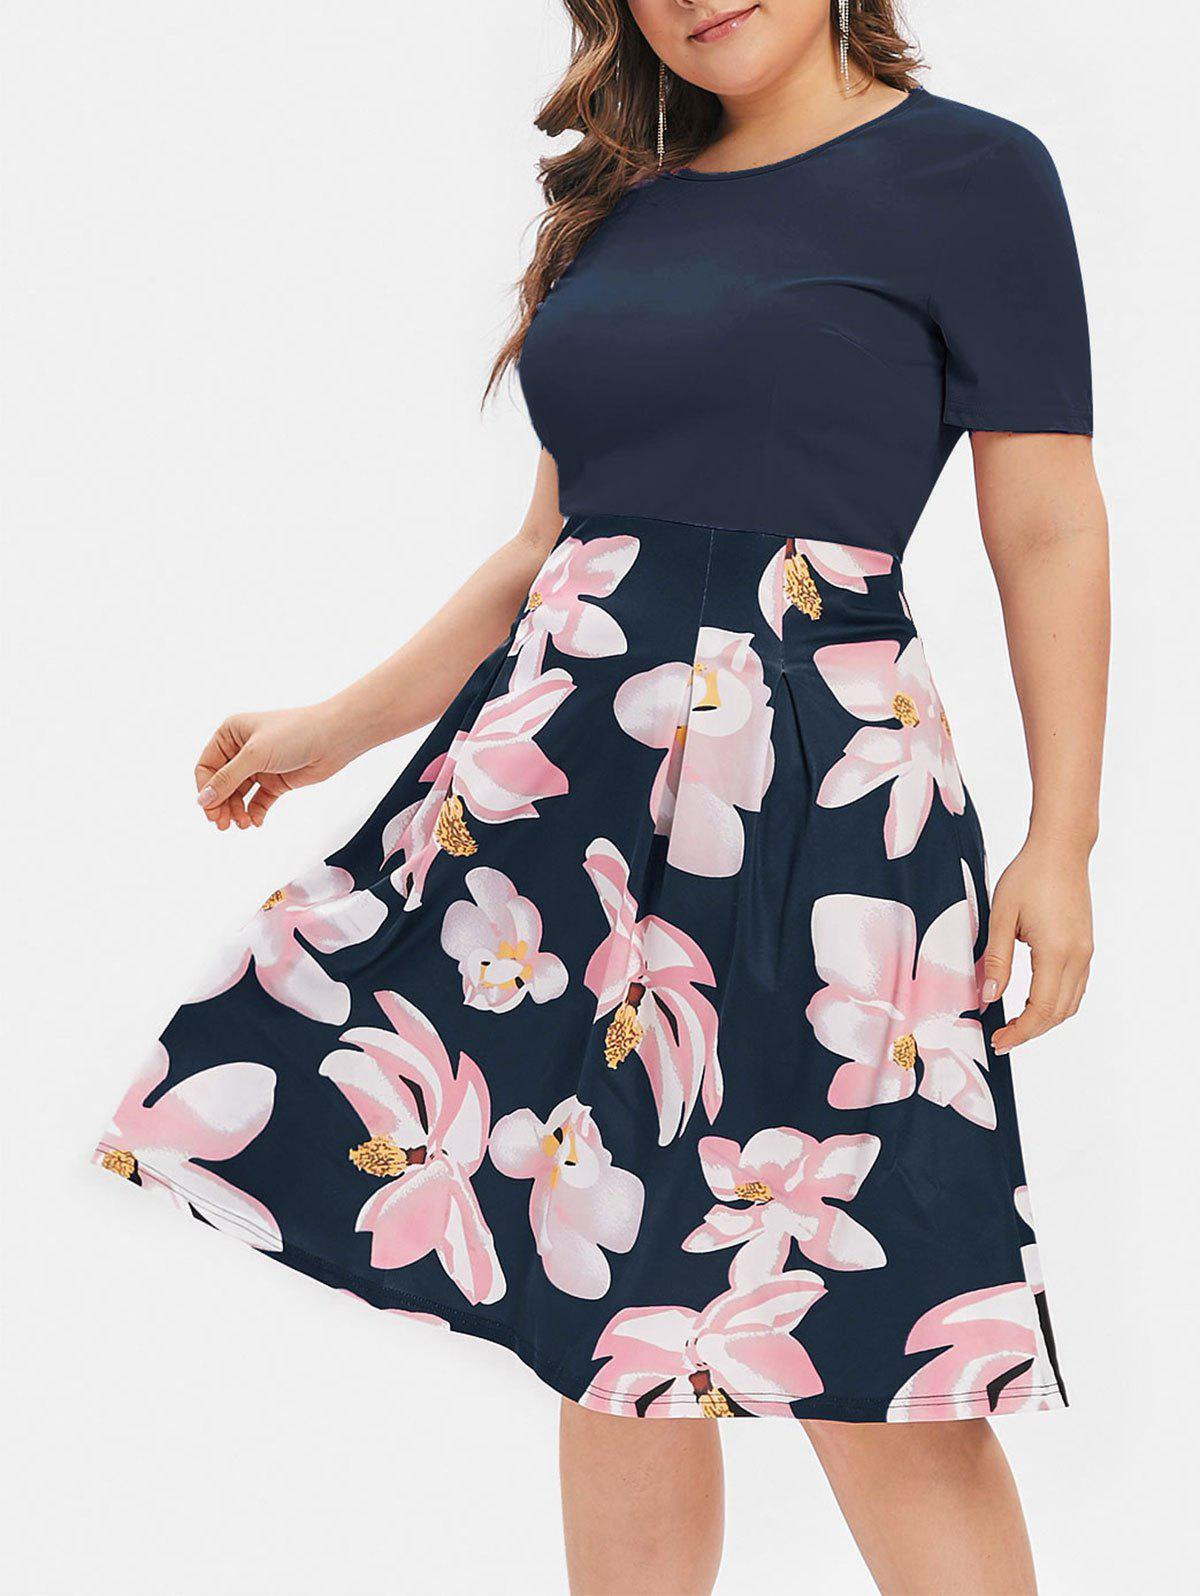 ecc82f8824c59 36% OFF   2019 Flower Plus Size Midi A Line Dress